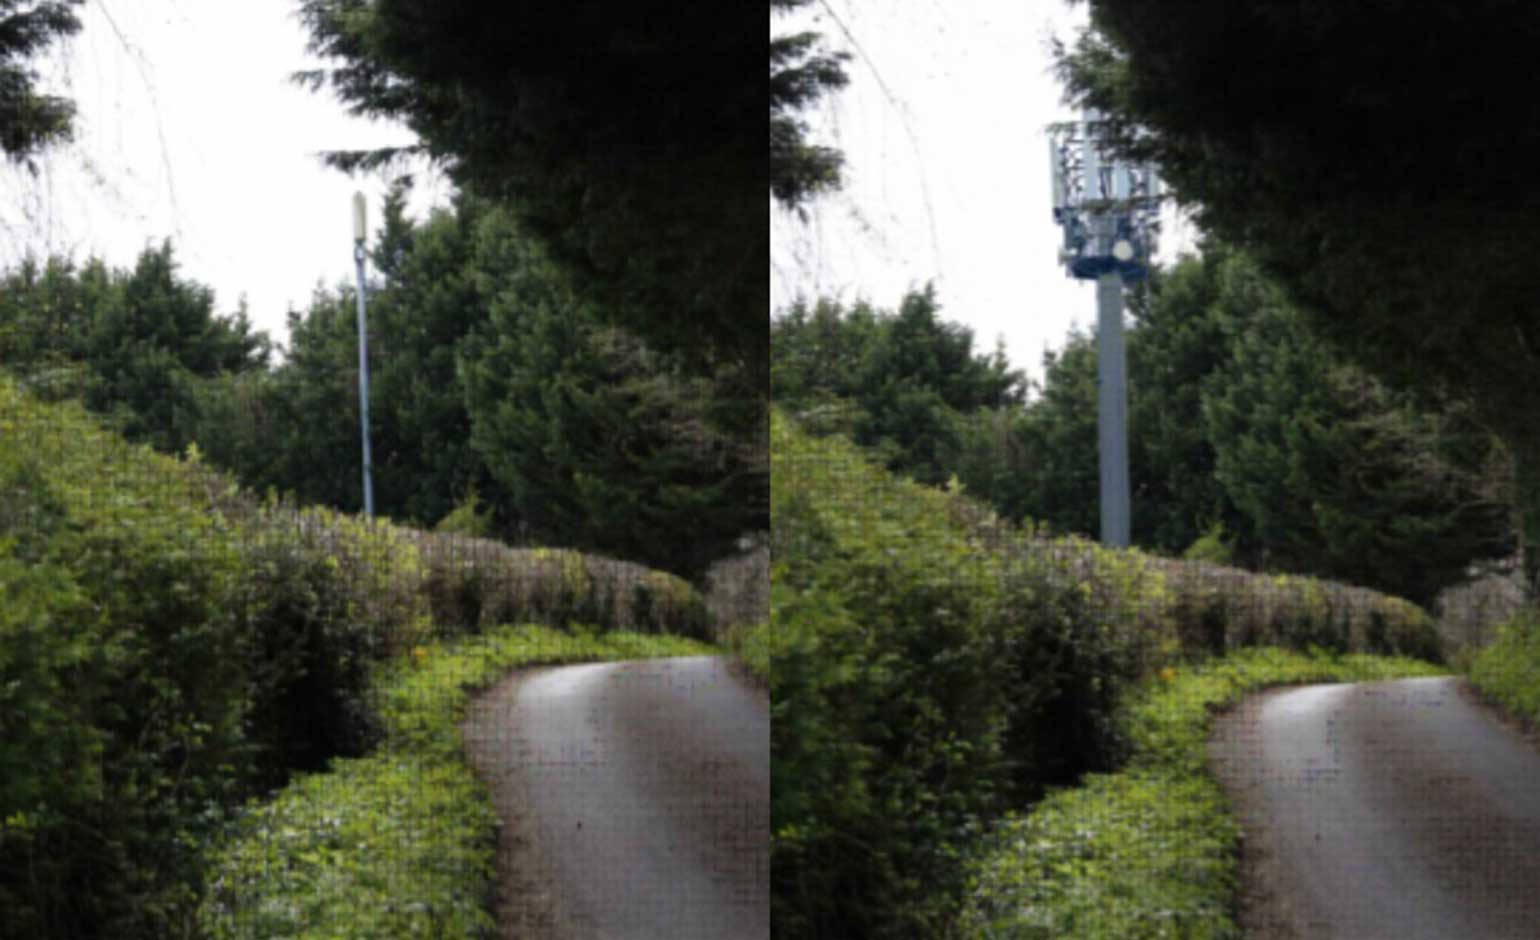 Phone networks lodge appeal after plans to upgrade mast for 5G rejected